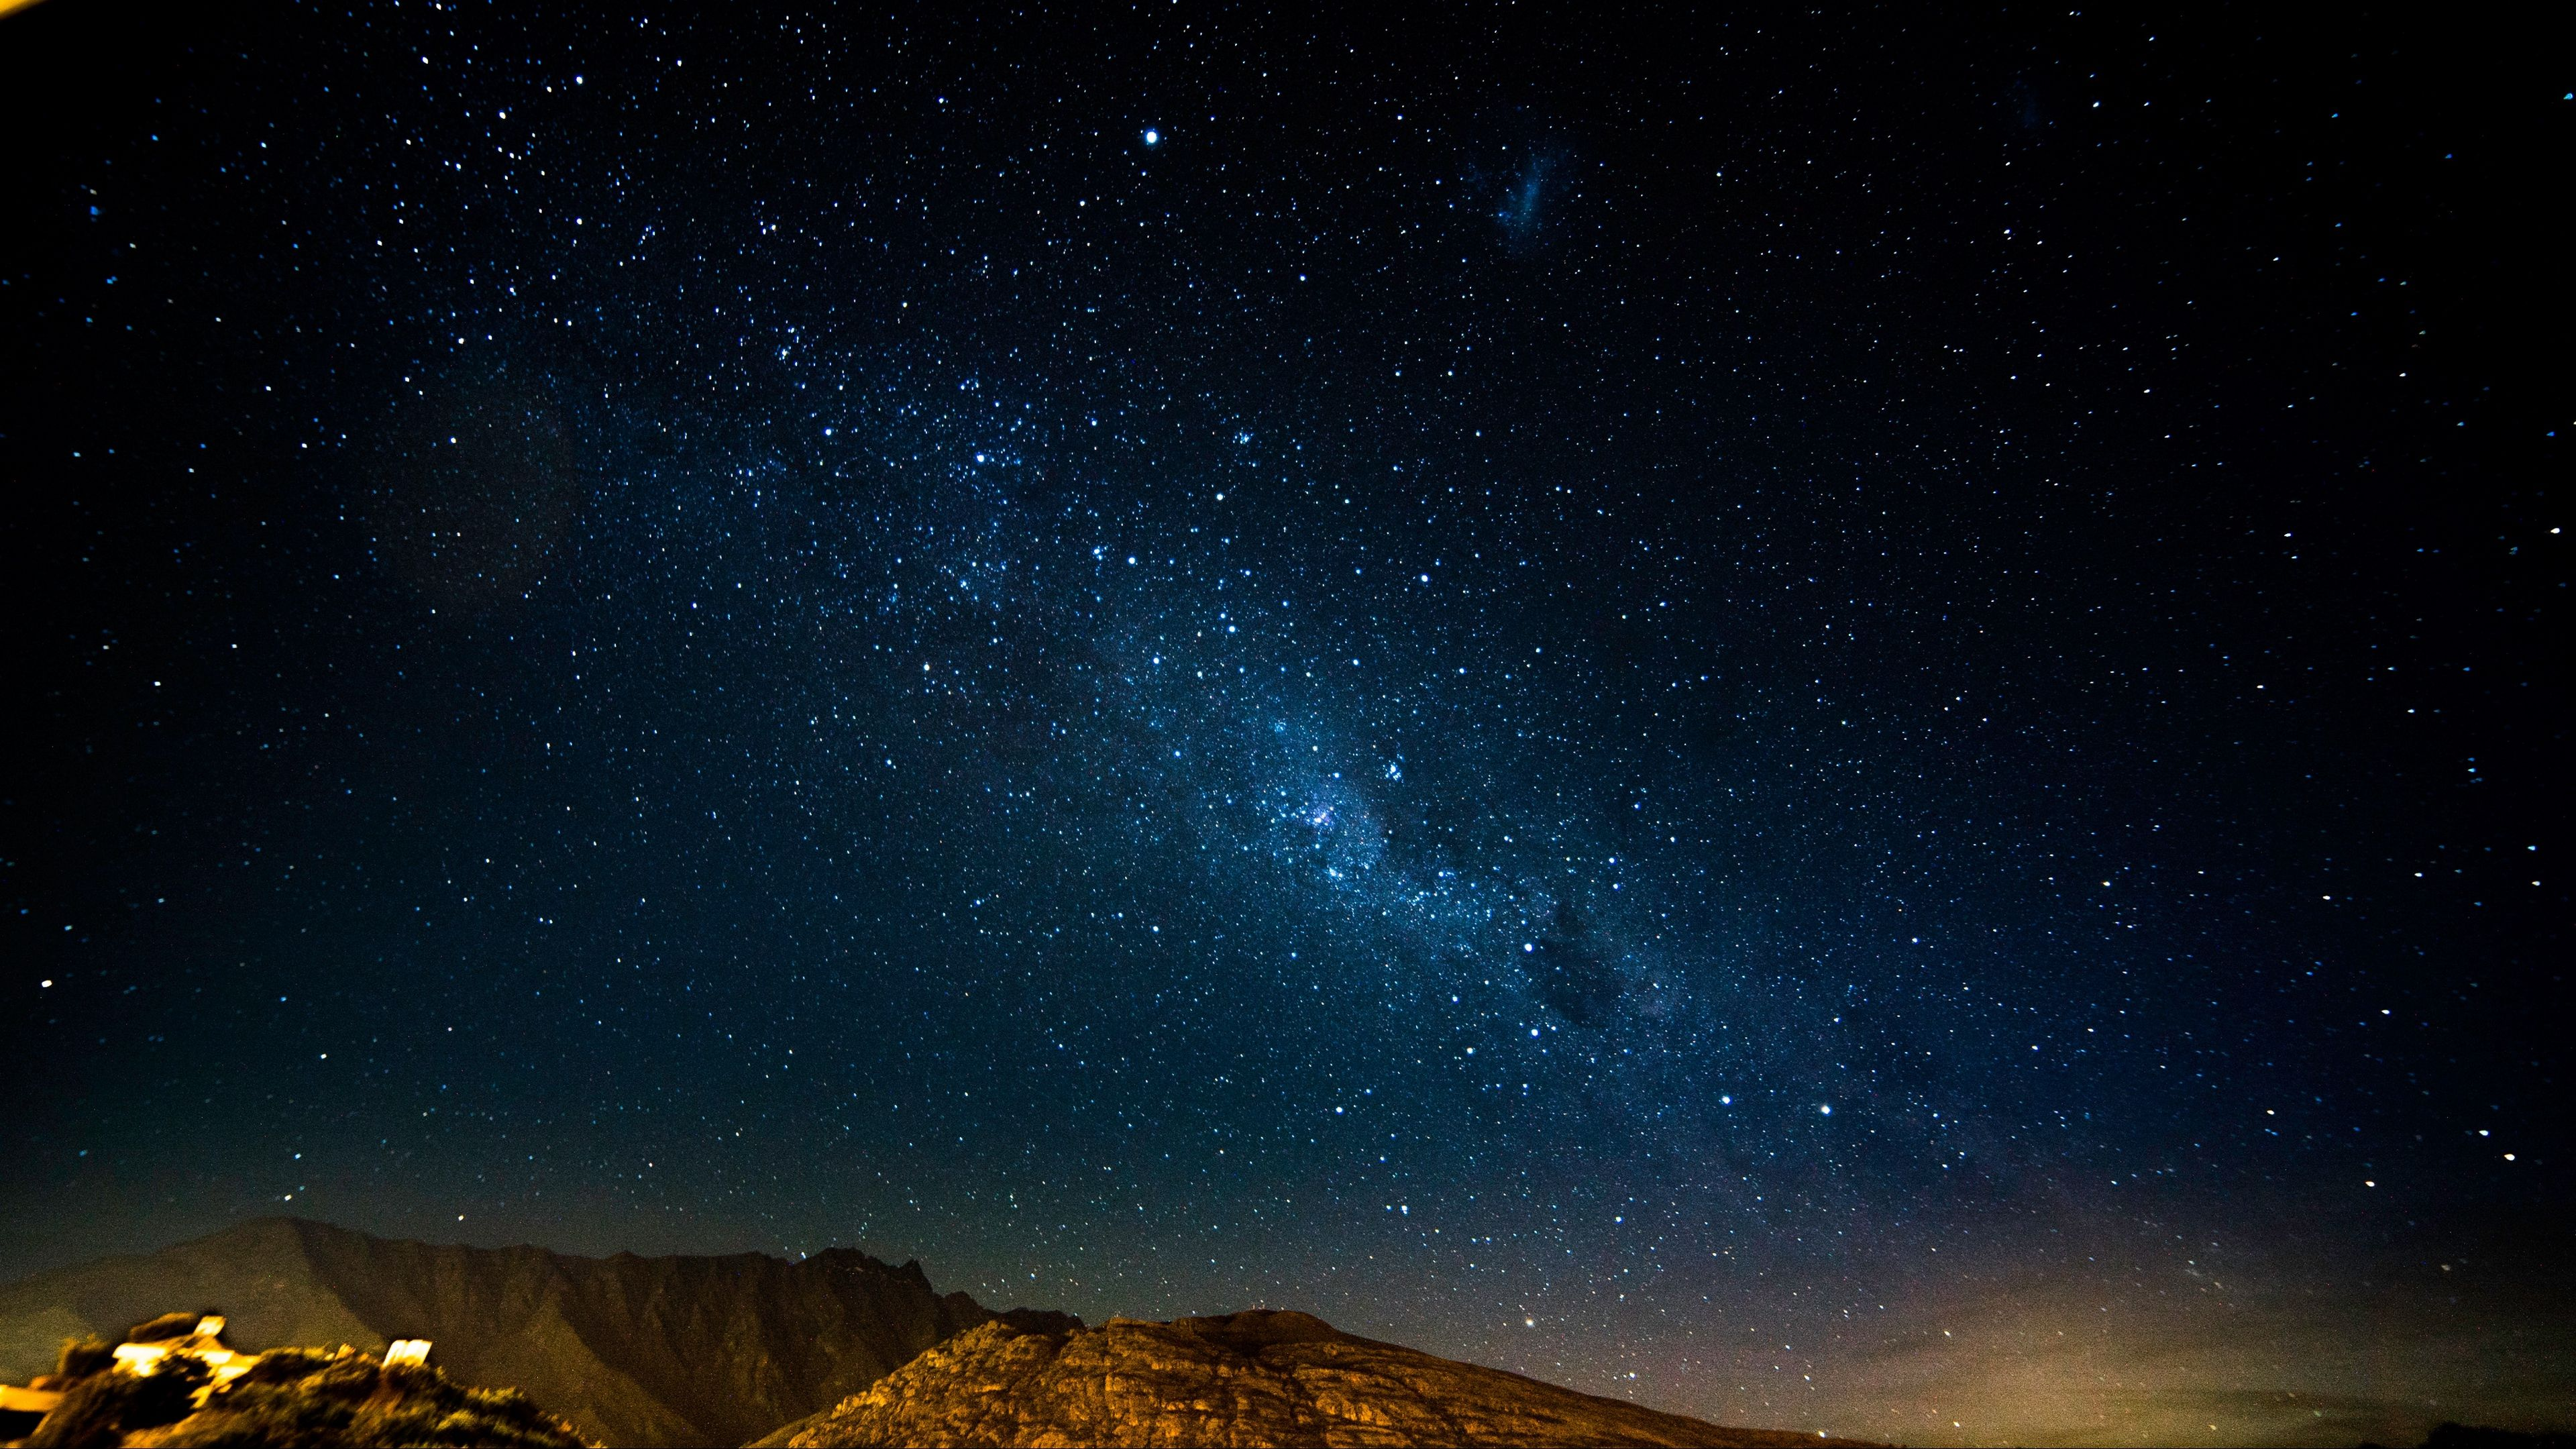 Starry Sky Night Mountains Radiance Glitter 4k Starry Sky Night Mountains Night Sky Wallpaper Starry Sky 3840x2160 Wallpaper